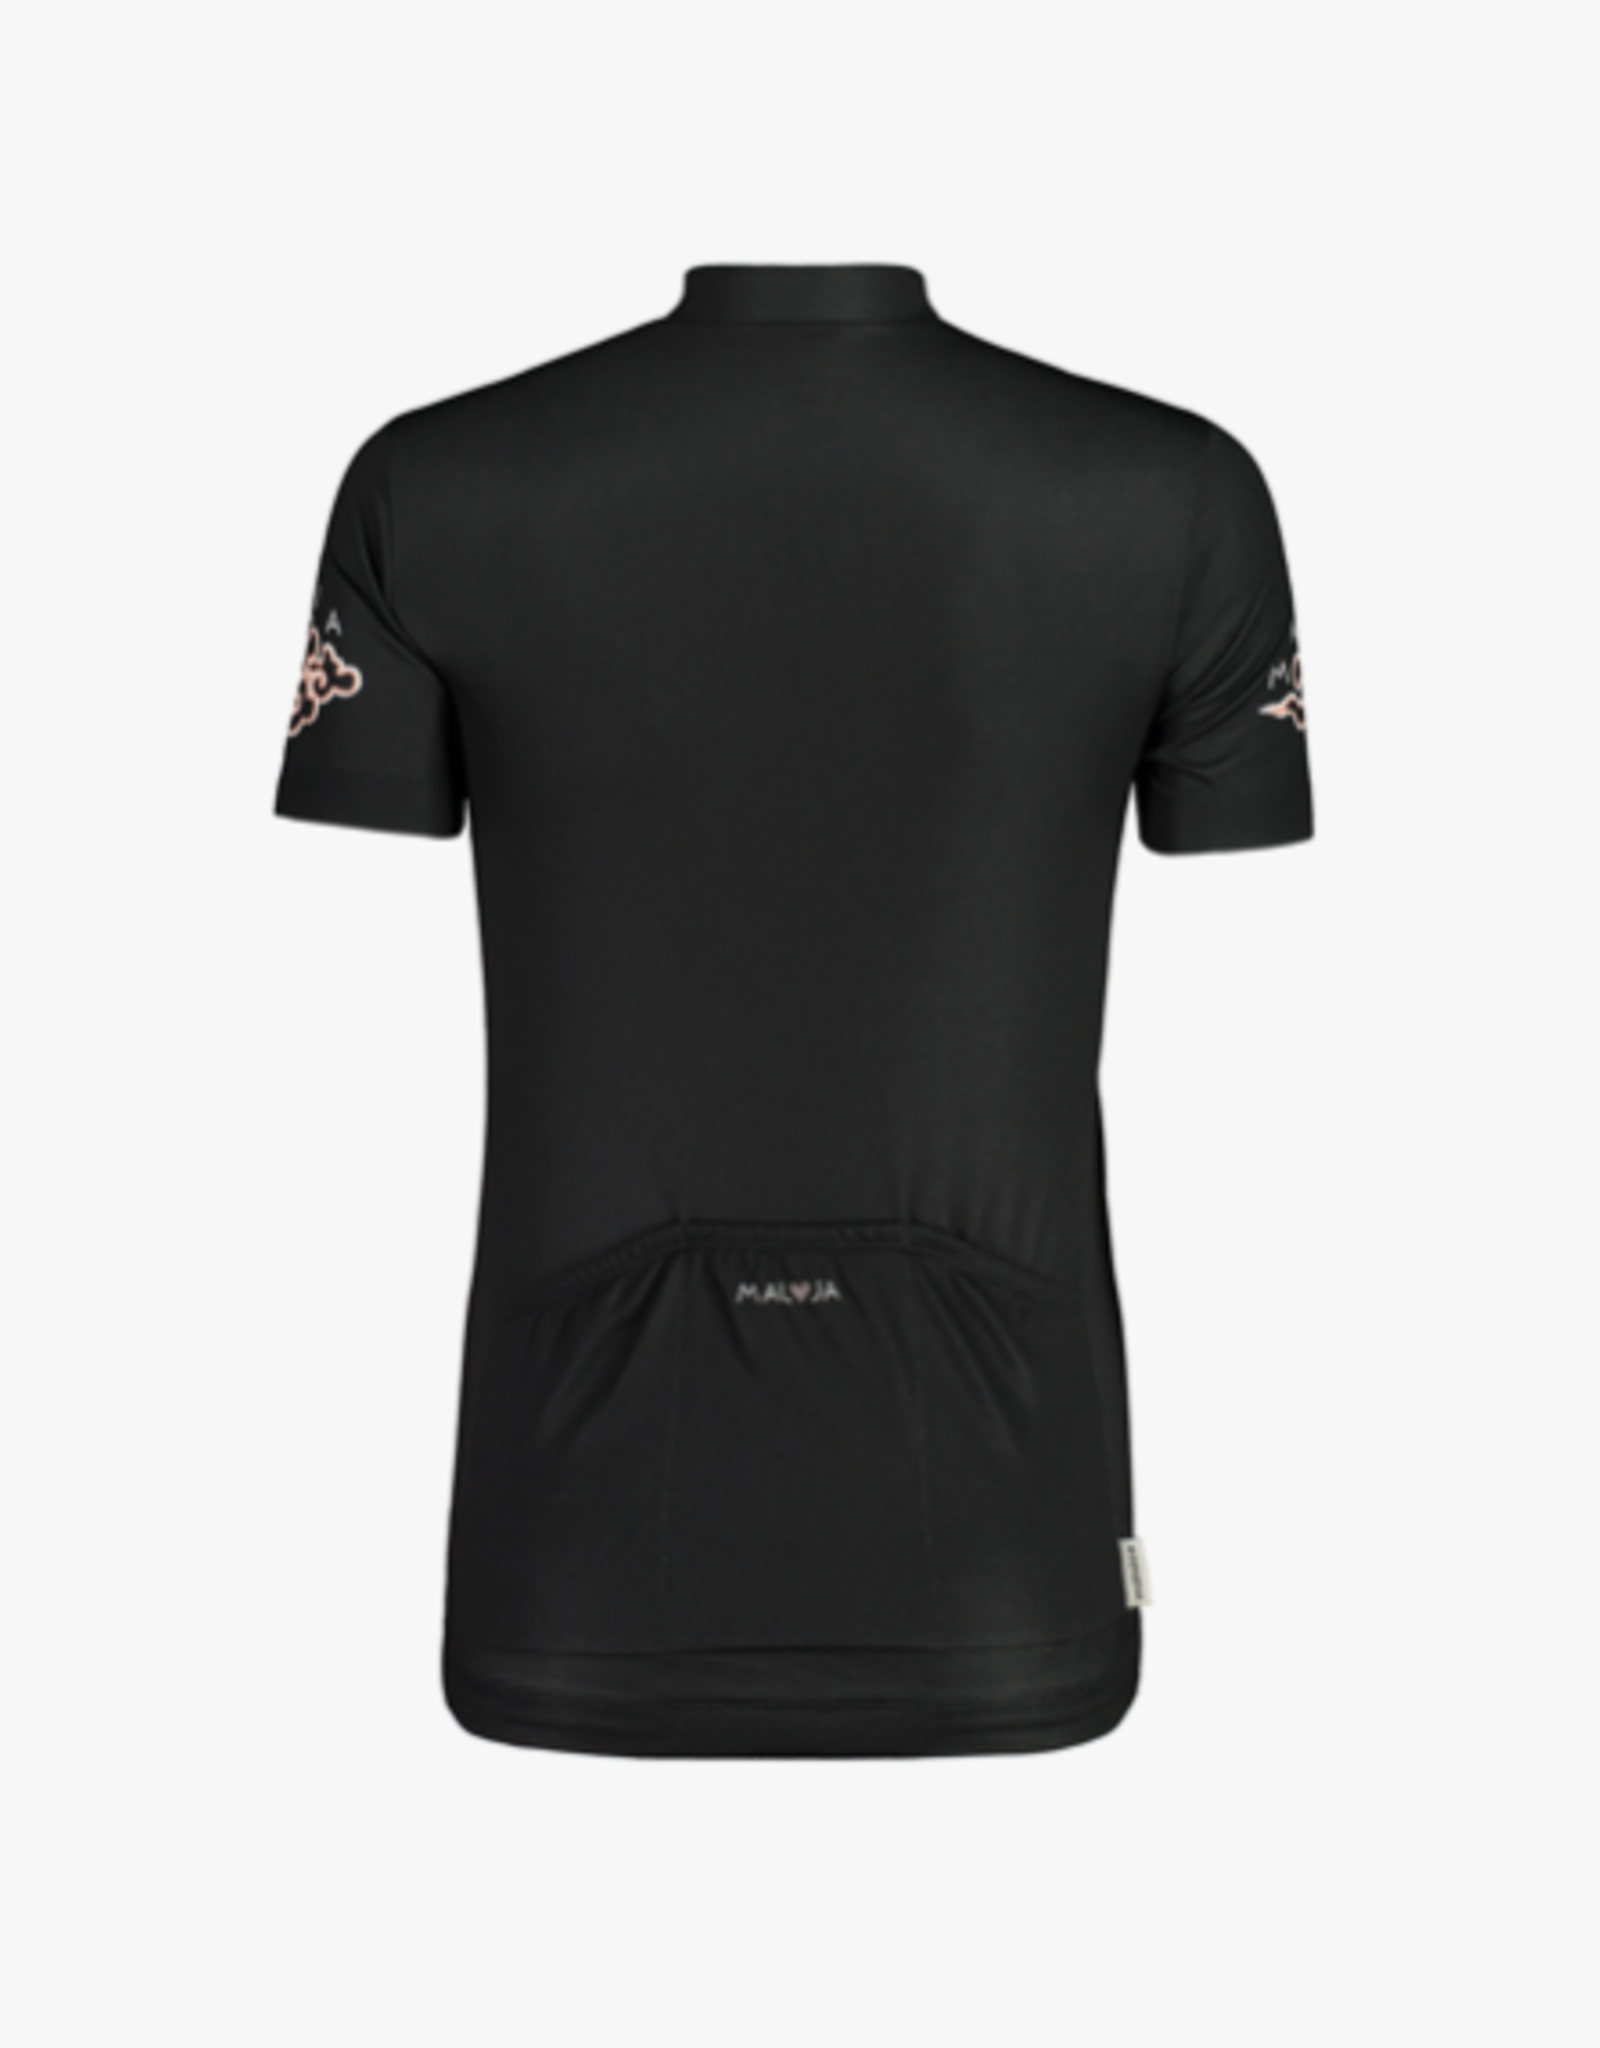 maloja 29150-1 Curuna 1/2 short sleeve bike jersey